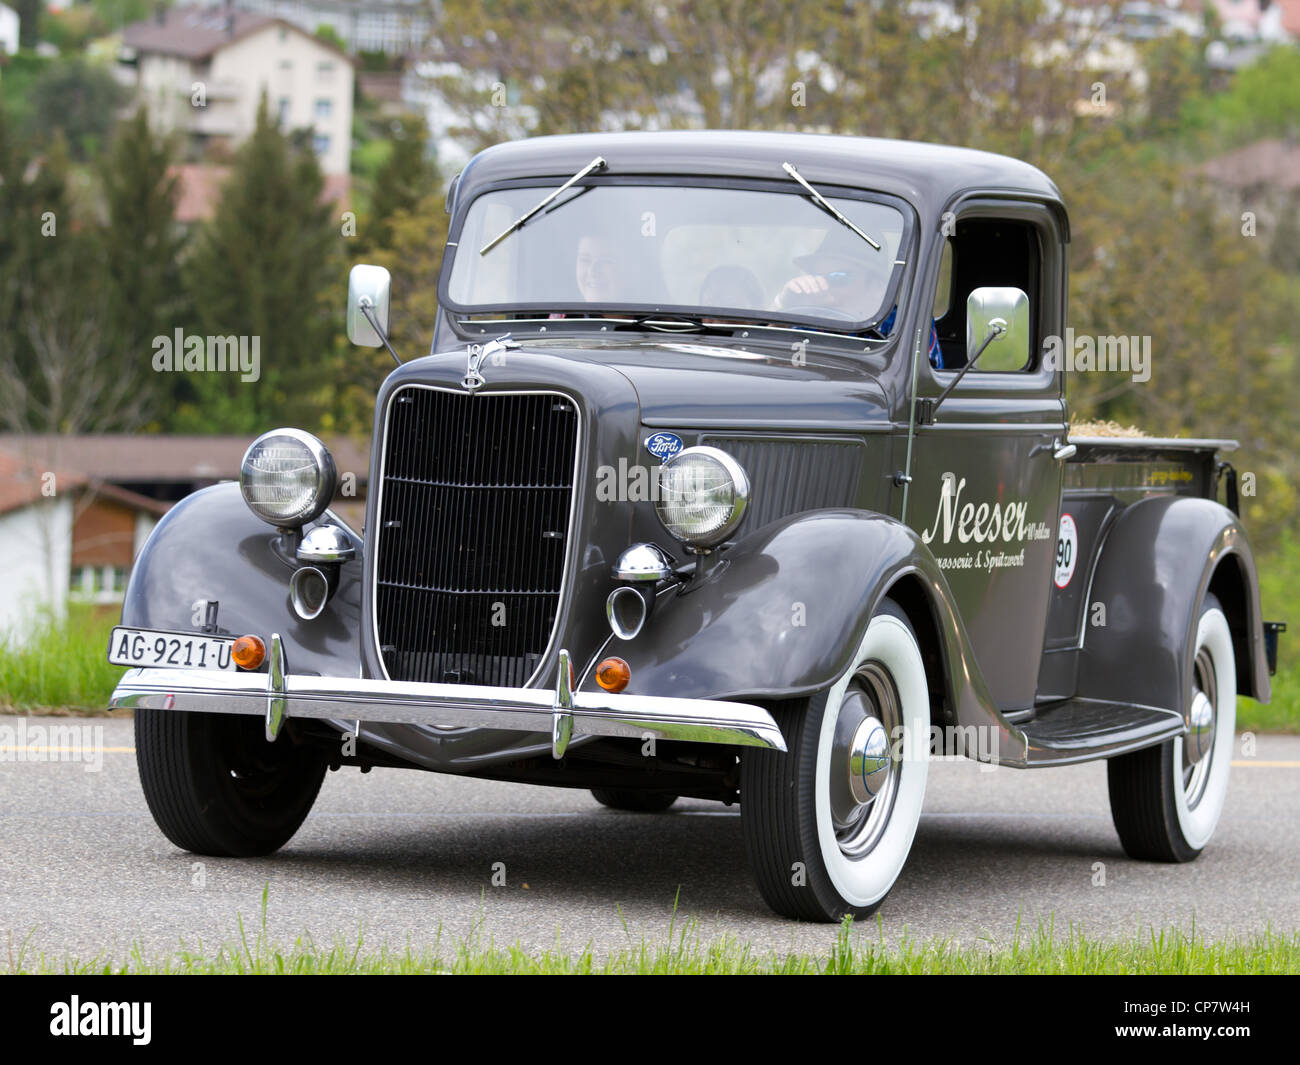 Vintage pre war car Ford Pick-up from 1936 at Grand Prix in Mutschellen, SUI on April 29, 2012. - Stock Image